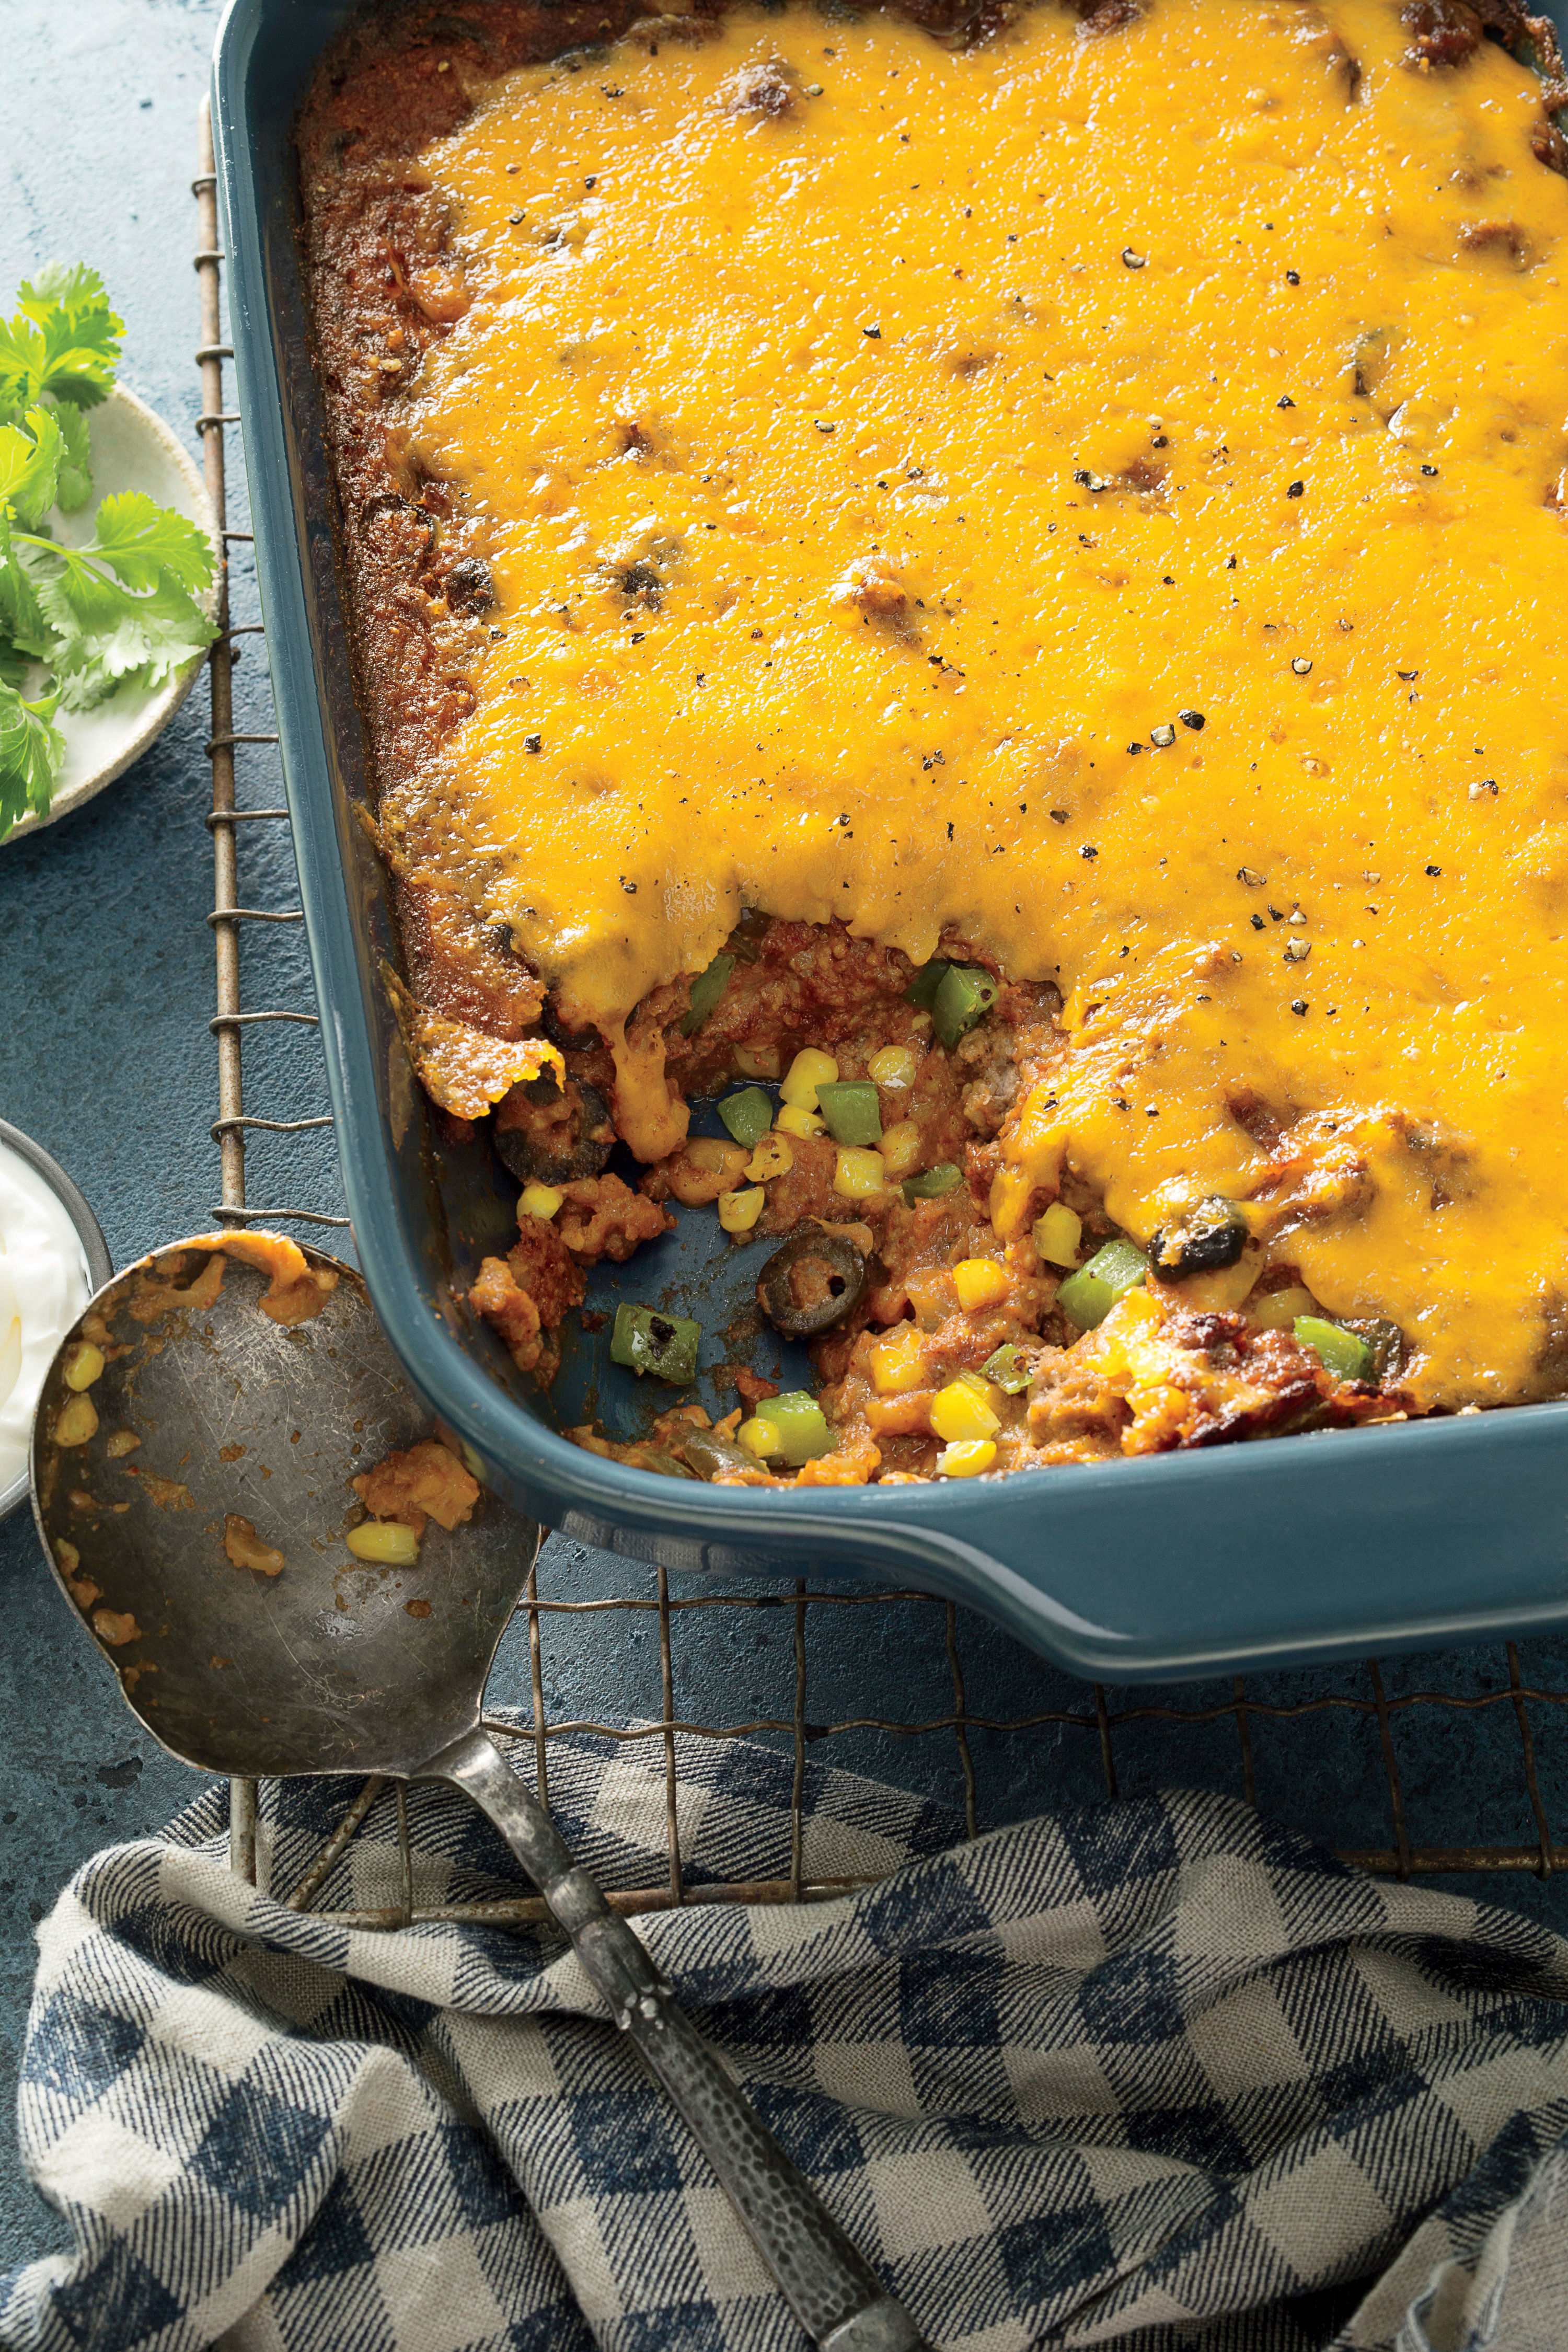 Deb Wise's Tamale Pie Mix-up Recipe